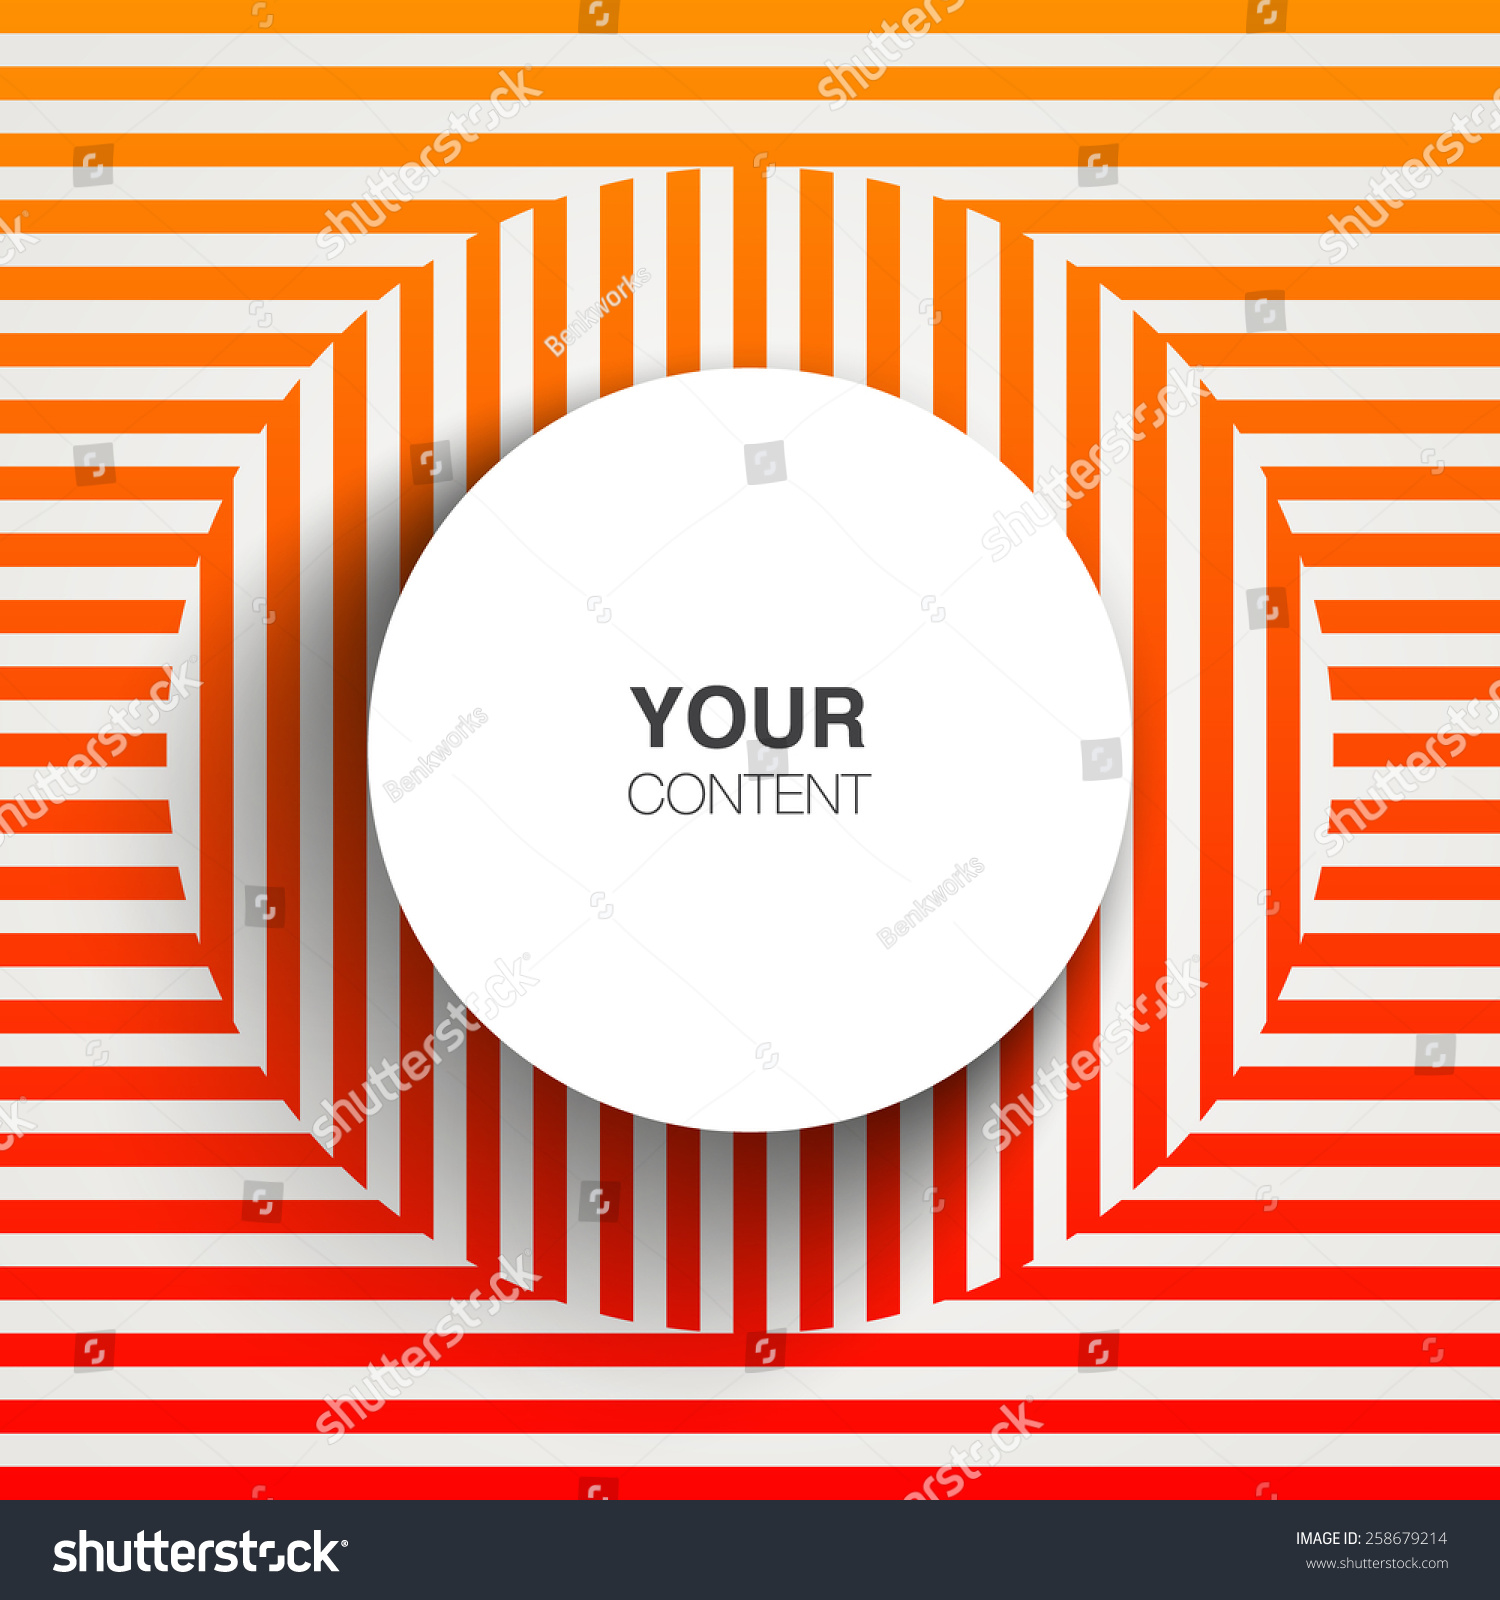 Text Box Design Abstract Orange Line Stock Vector Royalty Free Themed Circuit Board Drawing Clipart Illustration With Pattern Background Eps 10